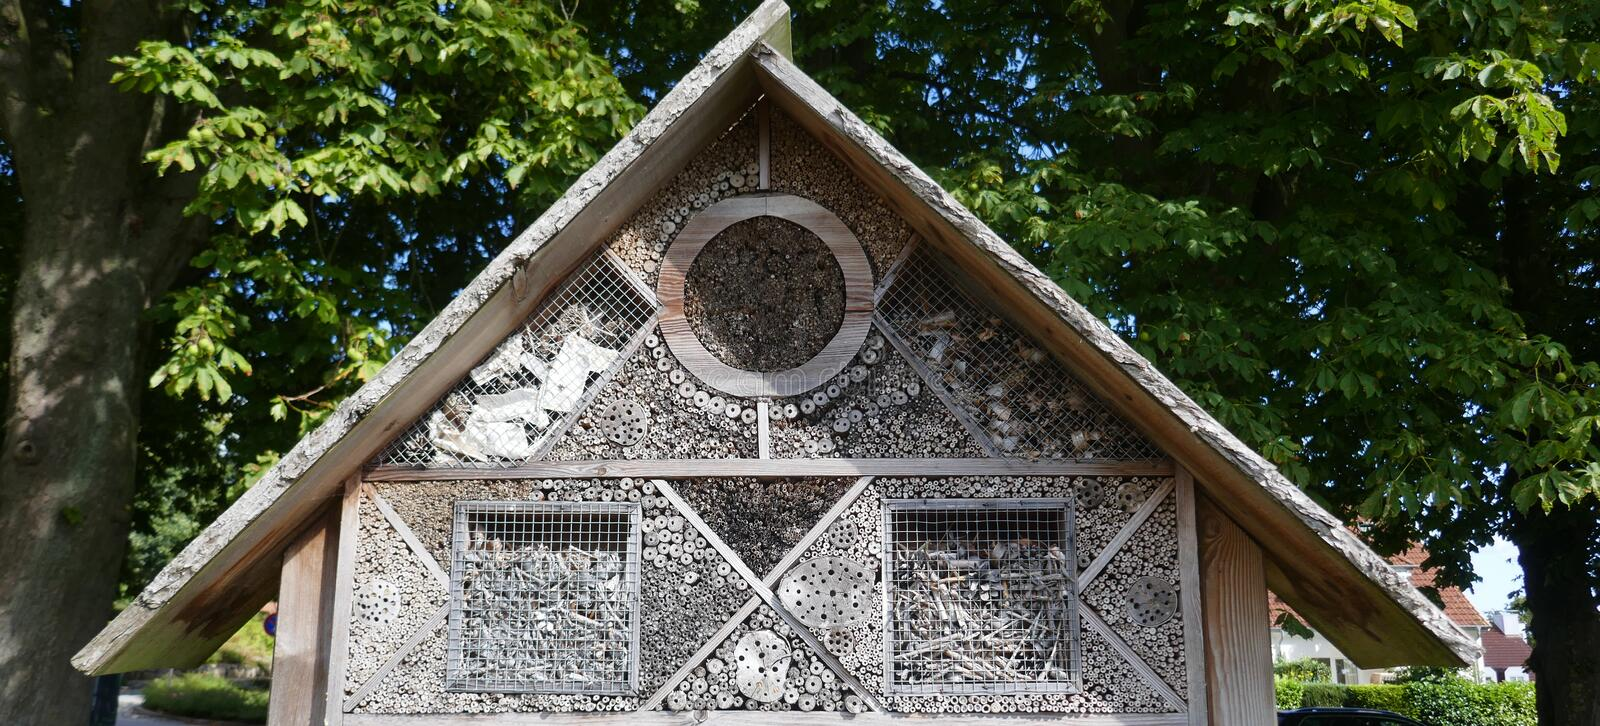 Insect protection, animal welfare. Large Insect hotel on a field in Schleswig-Holstein, Germany stock photo